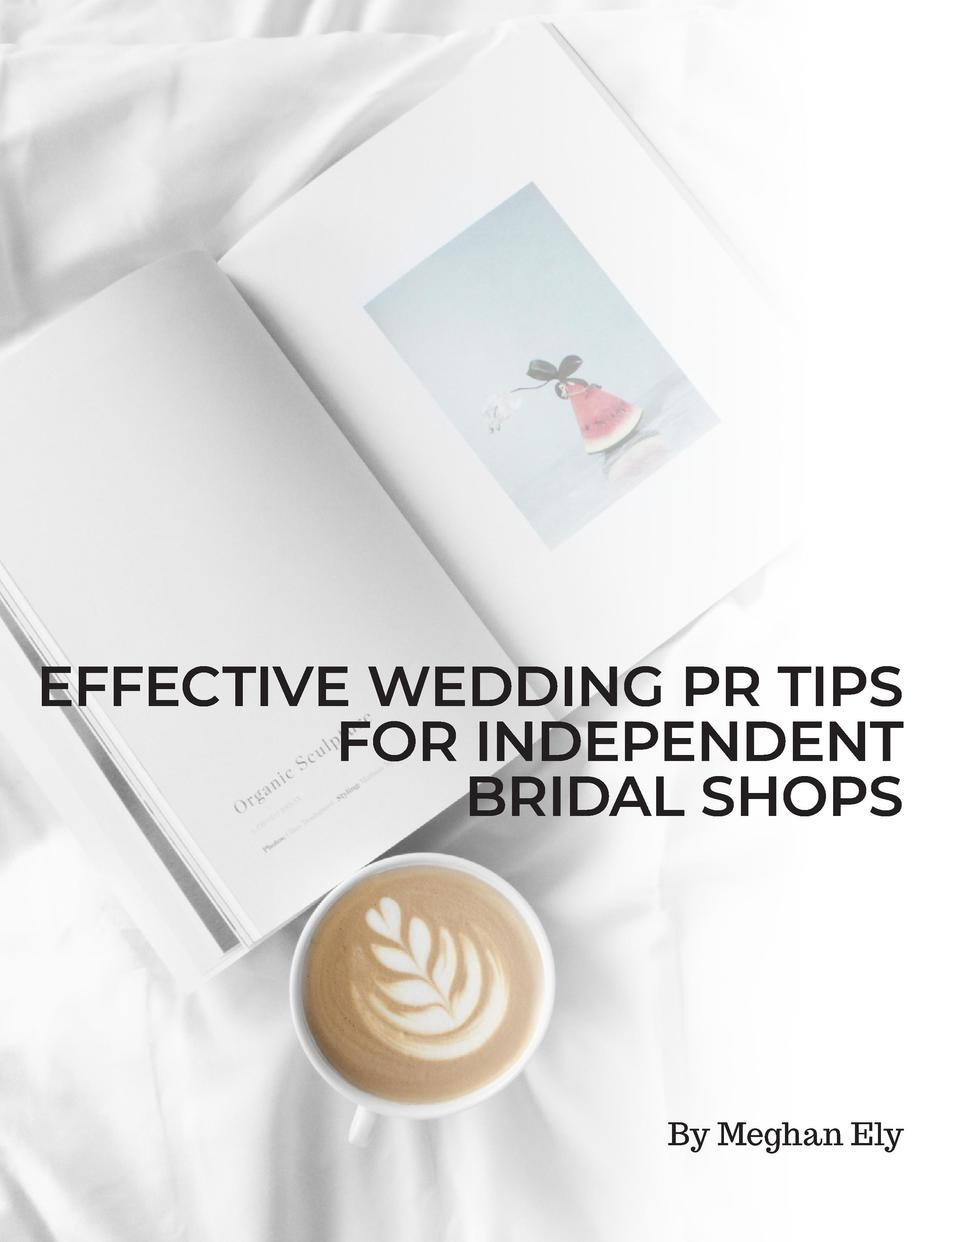 EFFECTIVE WEDDING PR TIPS FOR INDEPENDENT BRIDAL SHOPS  By Meghan Ely